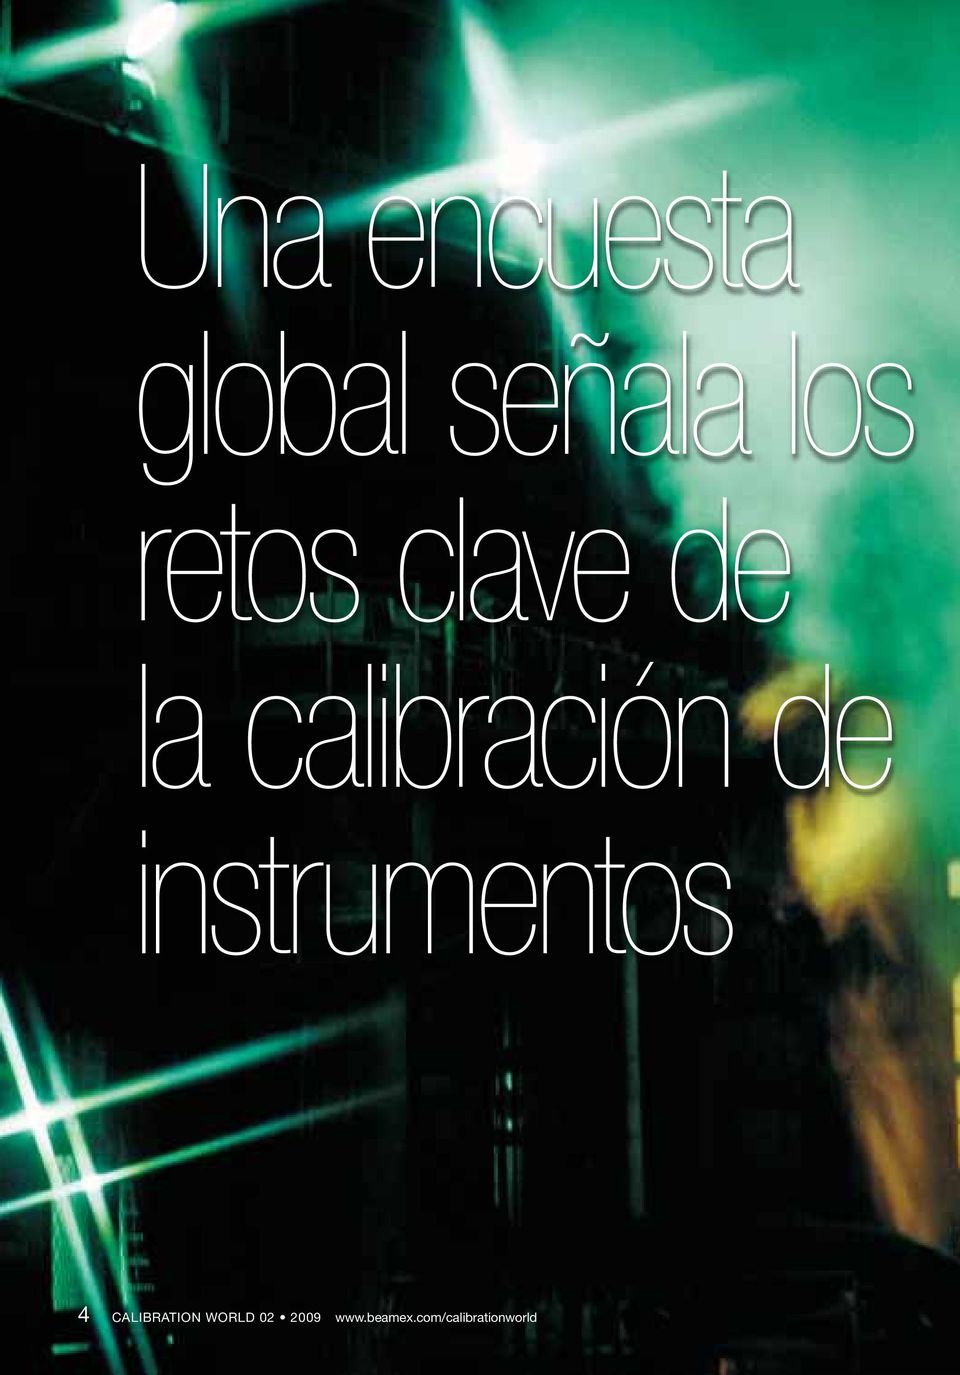 instrumentos 4 CALIBRATION WORLD